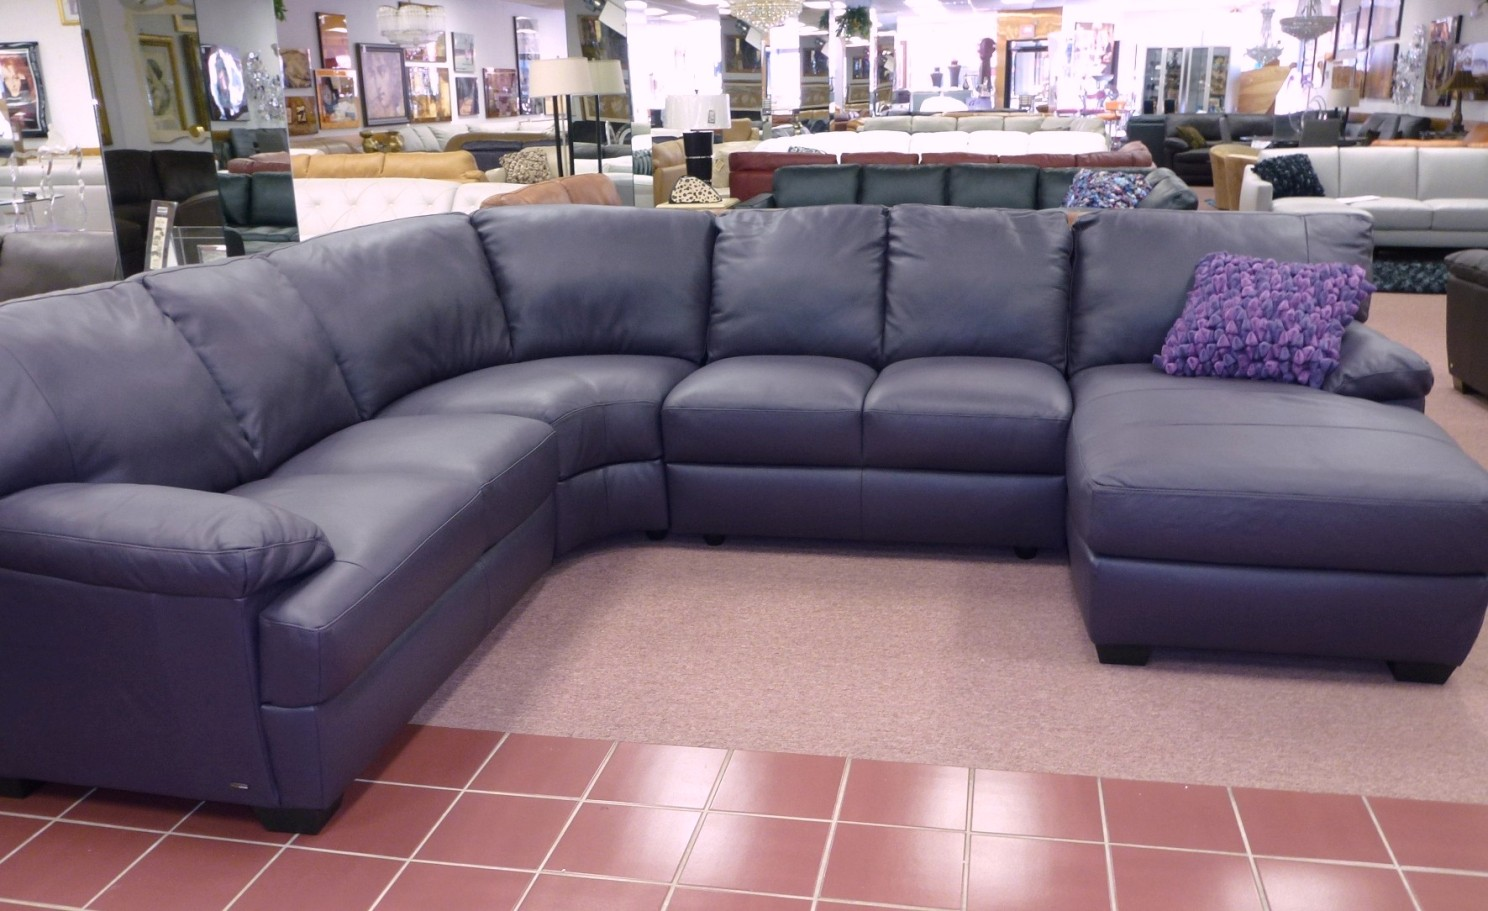 Natuzzi Leather Sectionals Sofas Specials PRESIDENTS DAY Furniture Sale Philadelphia Store